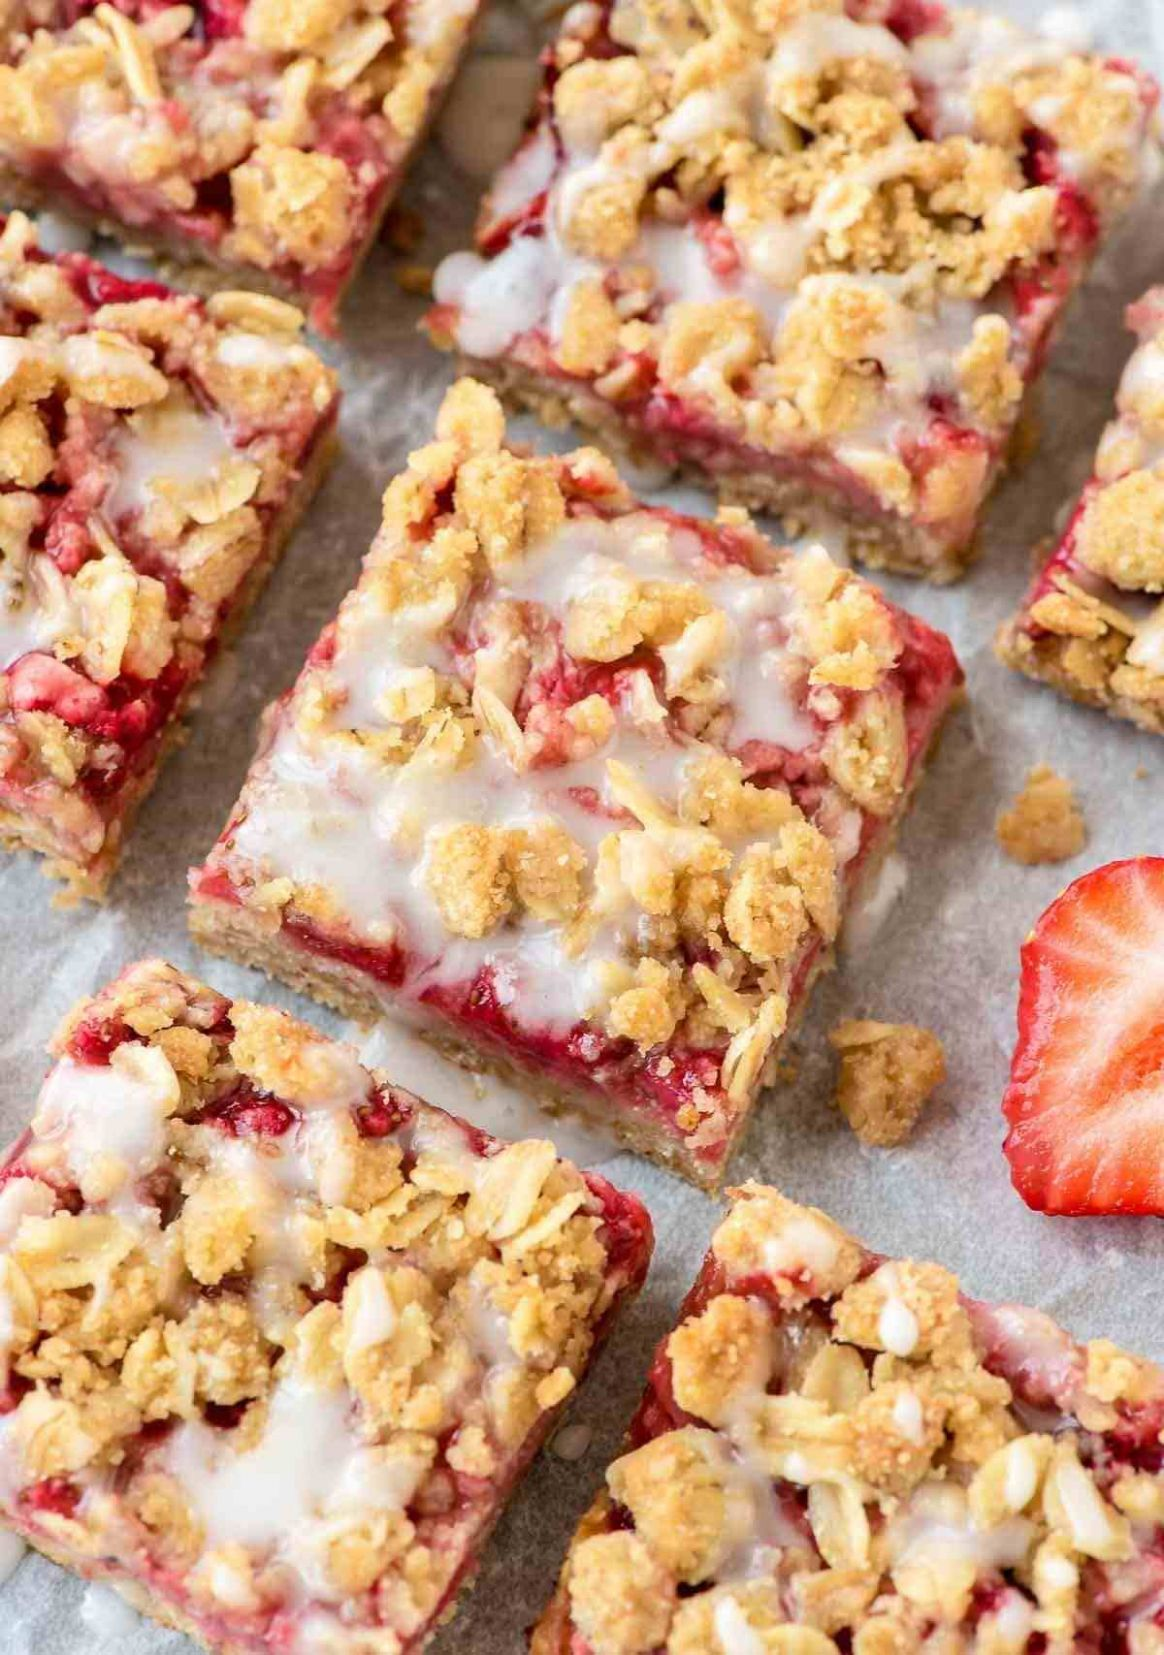 Healthy Strawberry Oatmeal Bars - Food Recipes Sweet